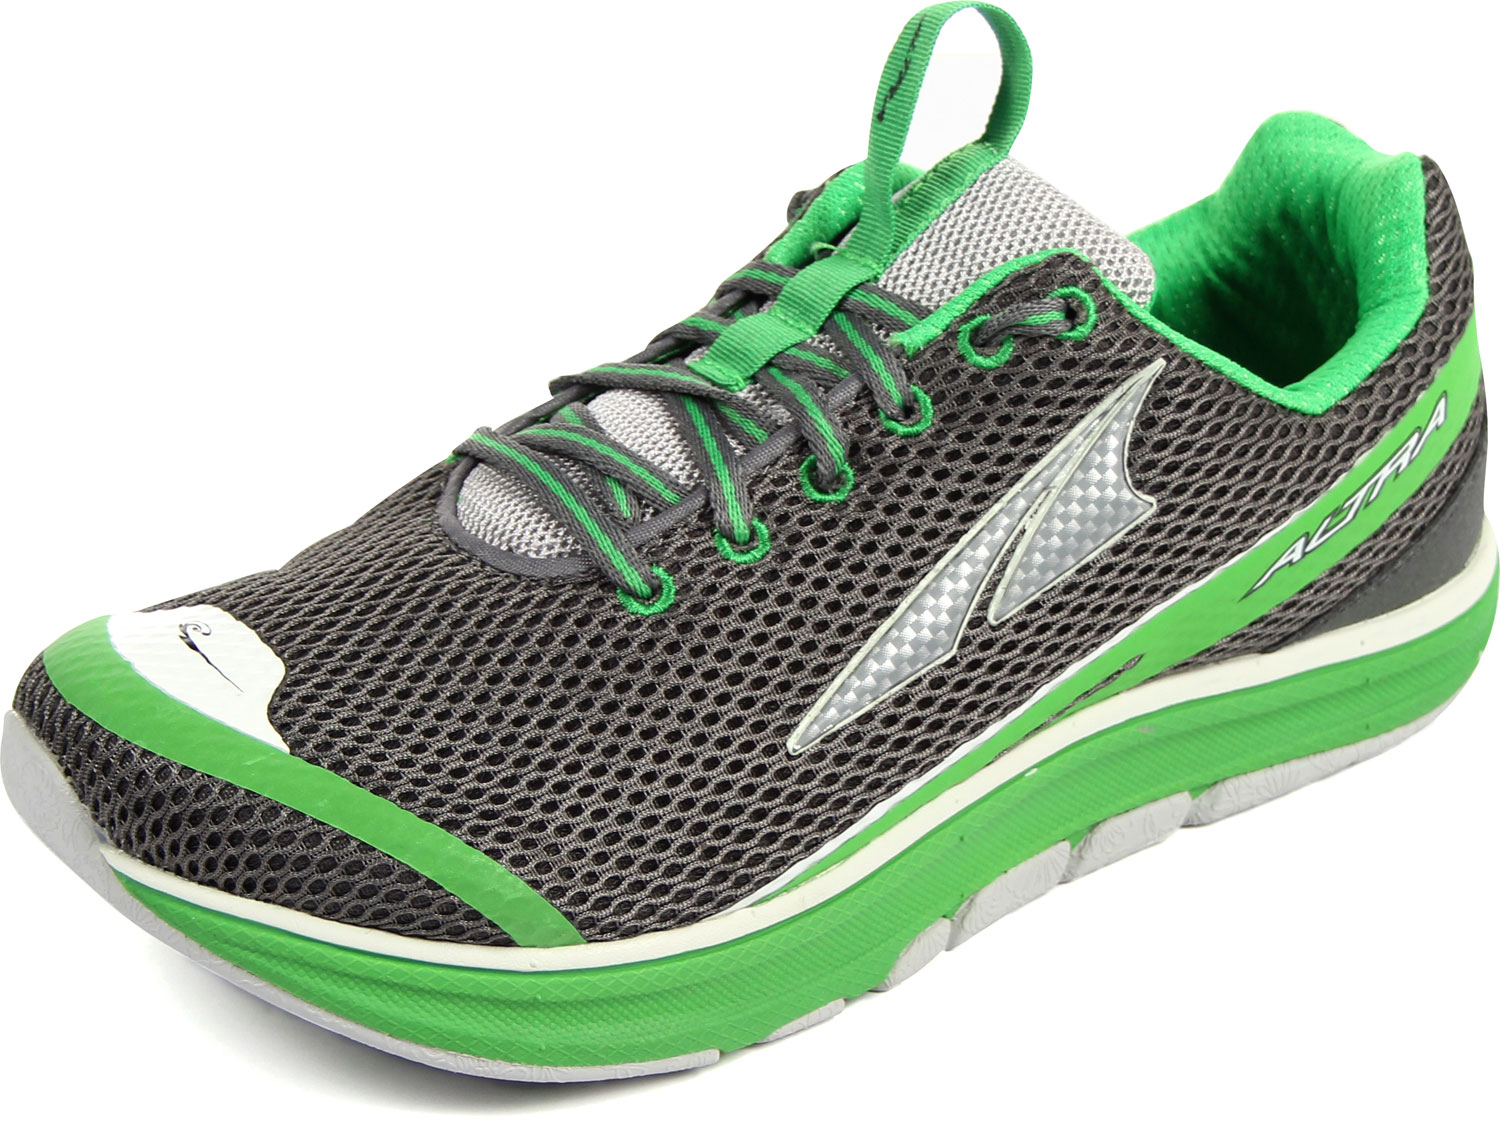 Image of Altra - Womens Torin 1.5 Running Shoes